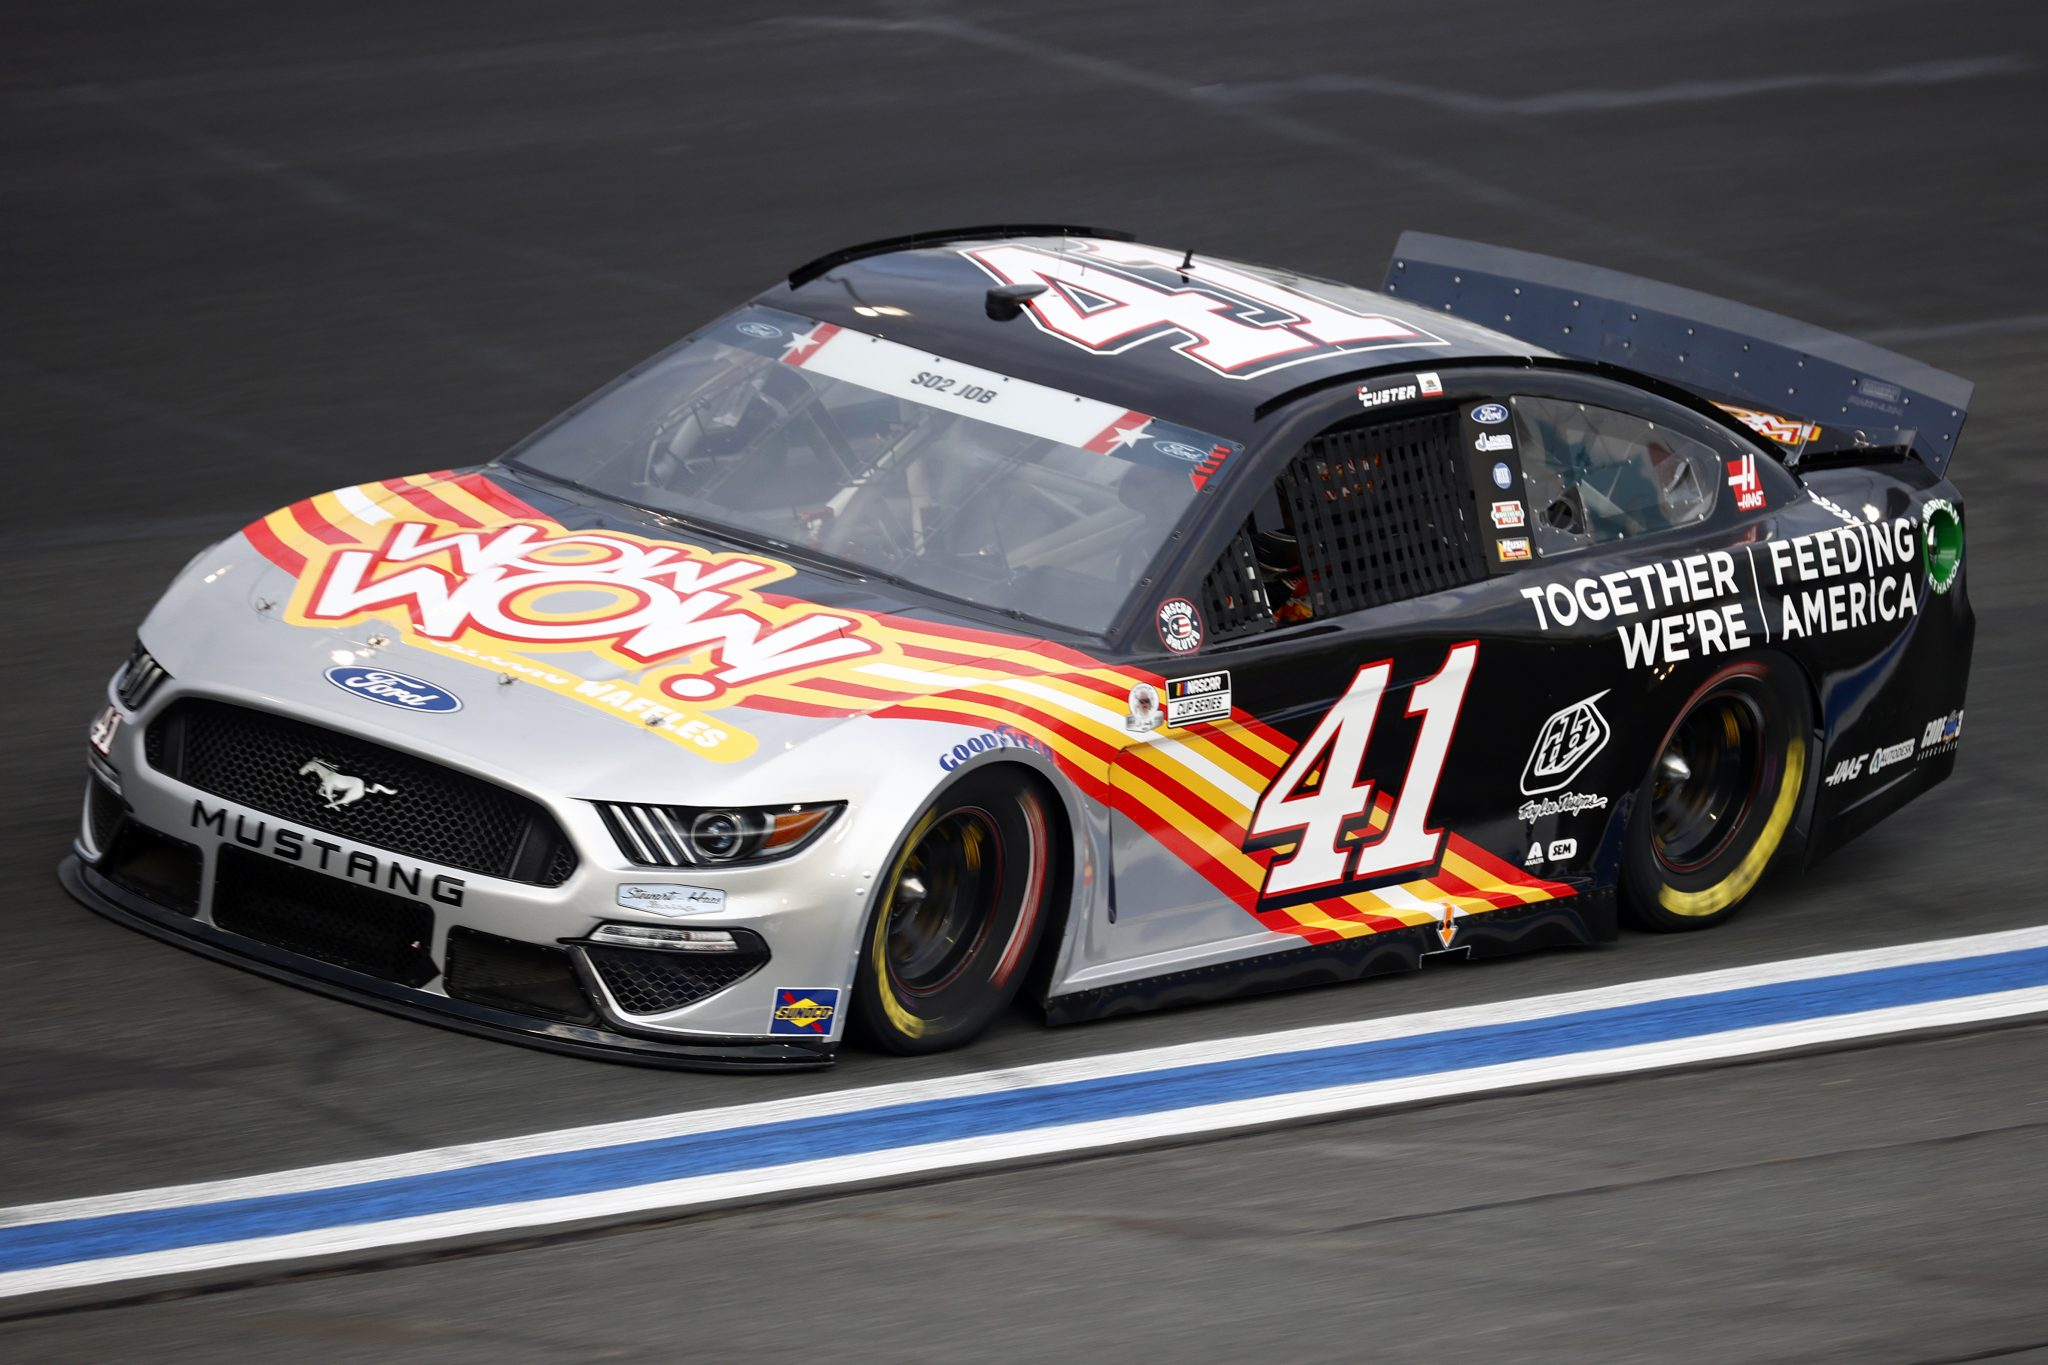 CONCORD, NORTH CAROLINA - MAY 28: Cole Custer, driver of the #41 Feeding America/Wow Wow Ford, drives during practice for the NASCAR Cup Series Coca-Cola 600 at Charlotte Motor Speedway on May 28, 2021 in Concord, North Carolina. (Photo by Jared C. Tilton/Getty Images) | Getty Images